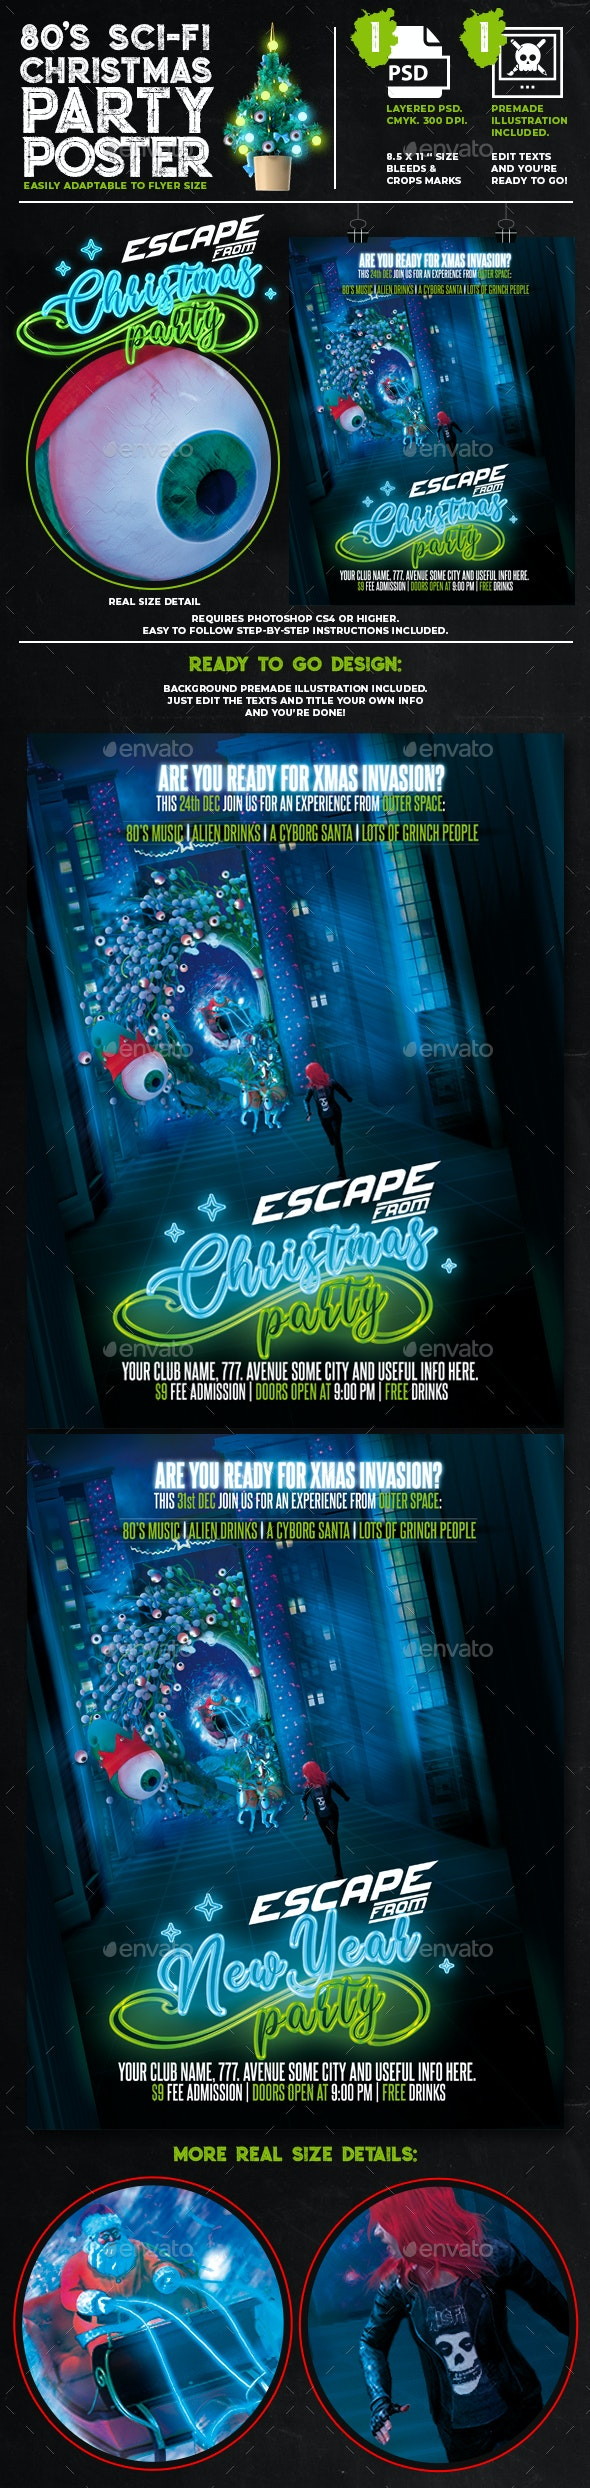 Escape From Christmas 80's Sci-Fi Themed Holidays Poster - Holidays Events